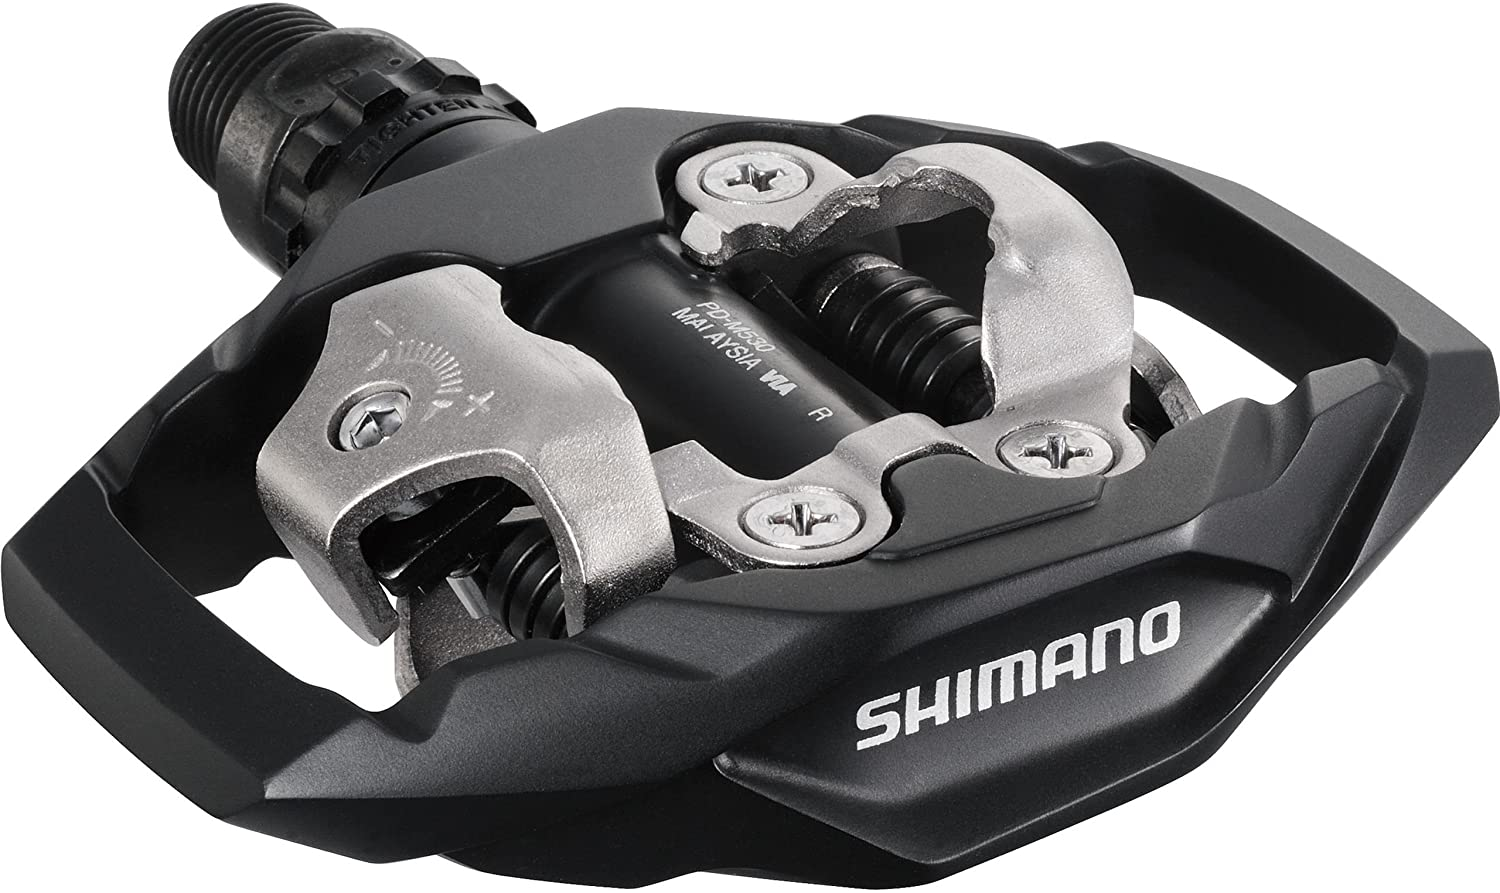 The SHIMANO PD-M530 Mountain Pedals